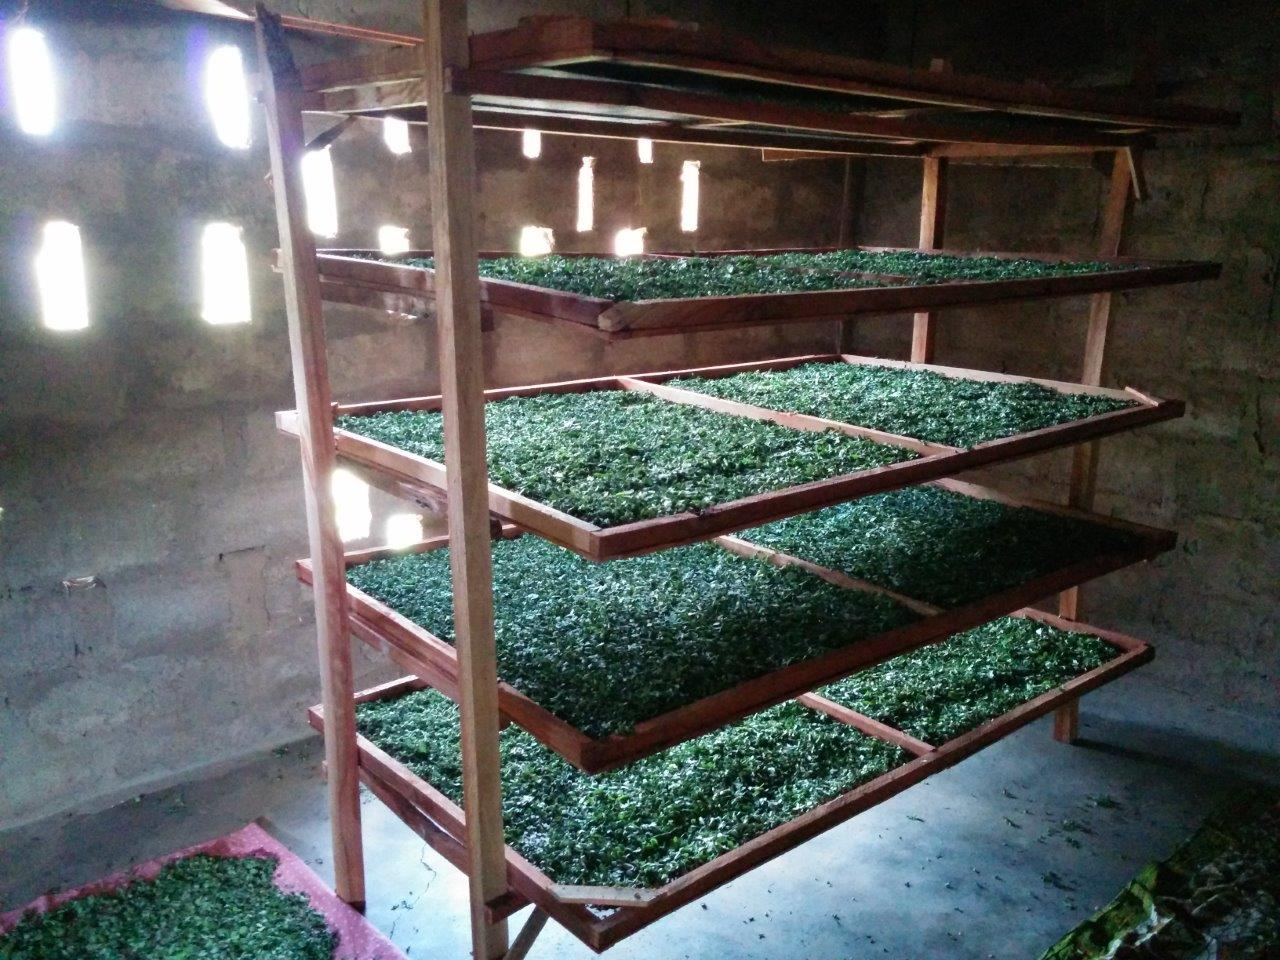 Moringa Processing in Benin - drying racks